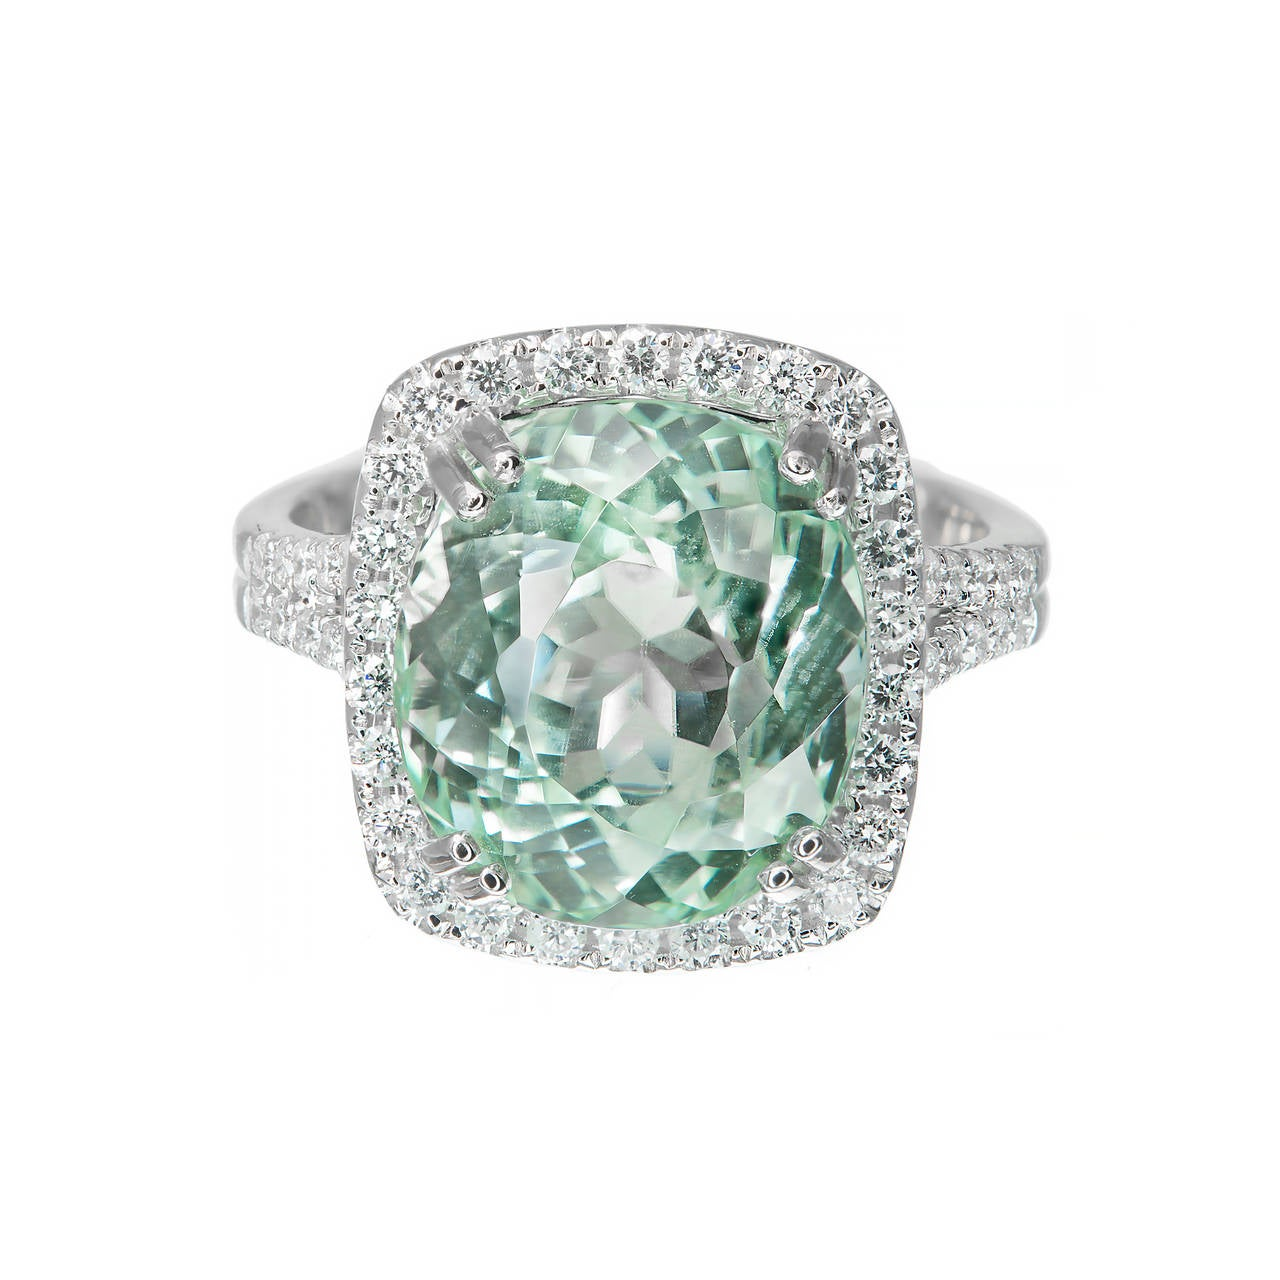 engagement ring custom made rings tourmaline diamonds green product in diamond gold oval white tourmailne and